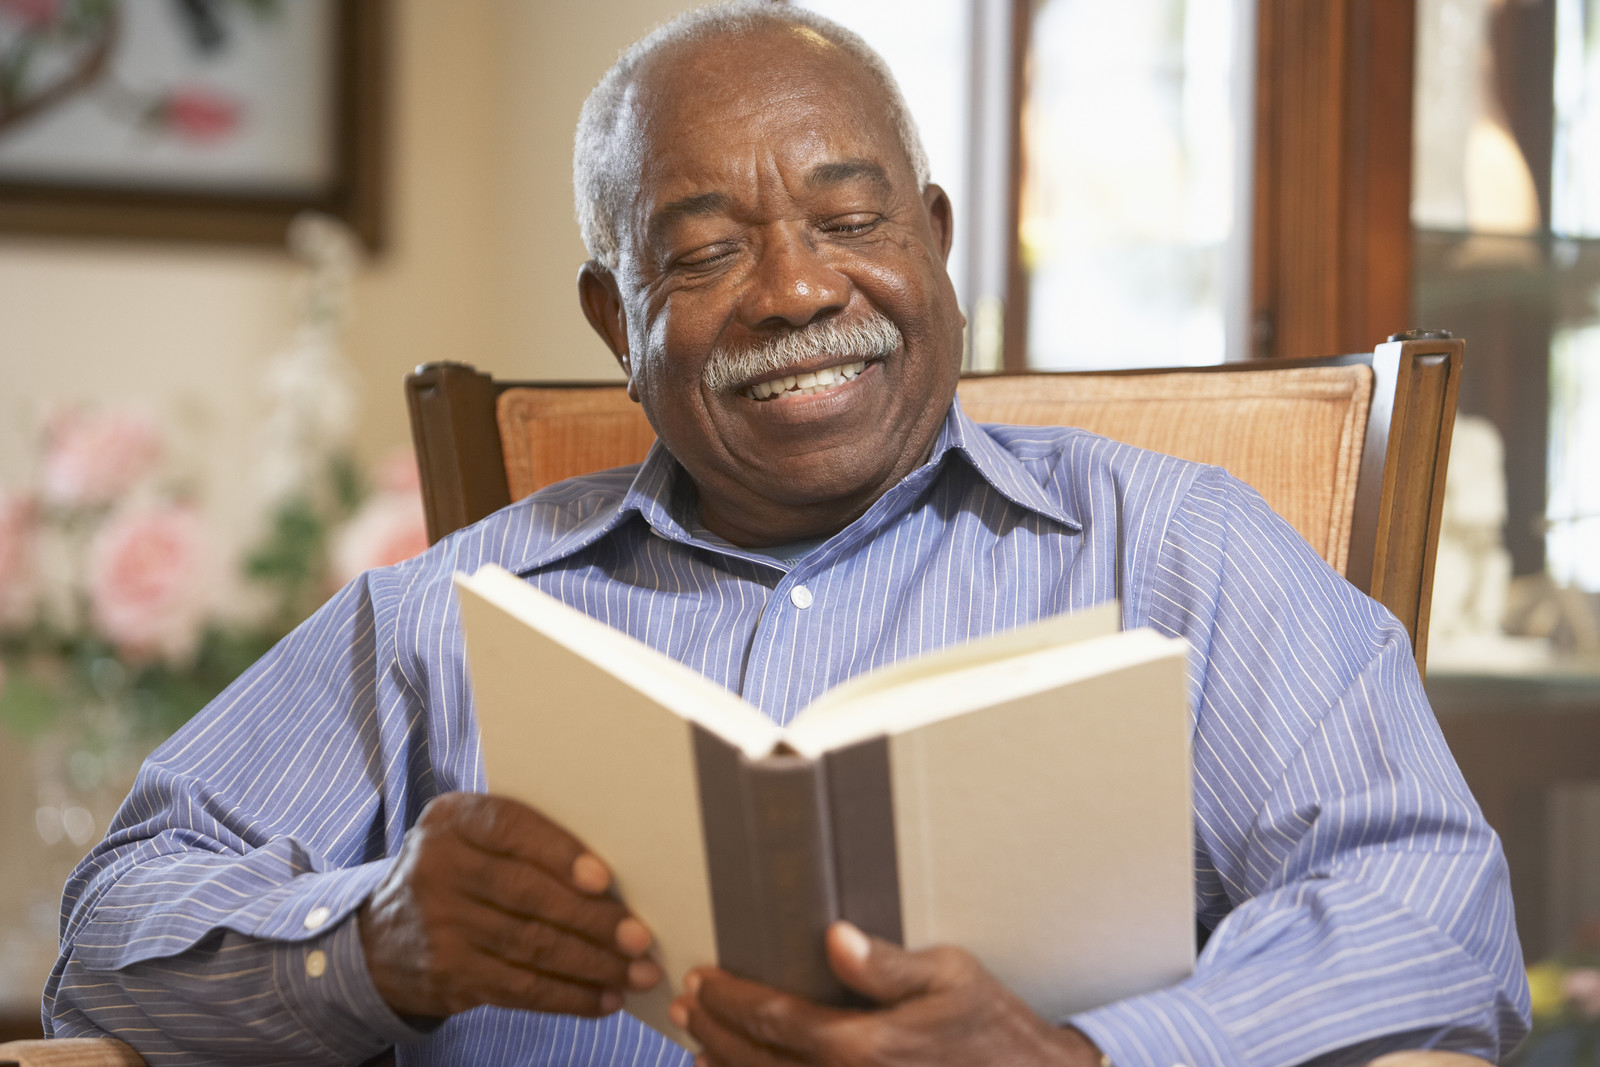 Senior man sitting in a chair with a book smiling and reading